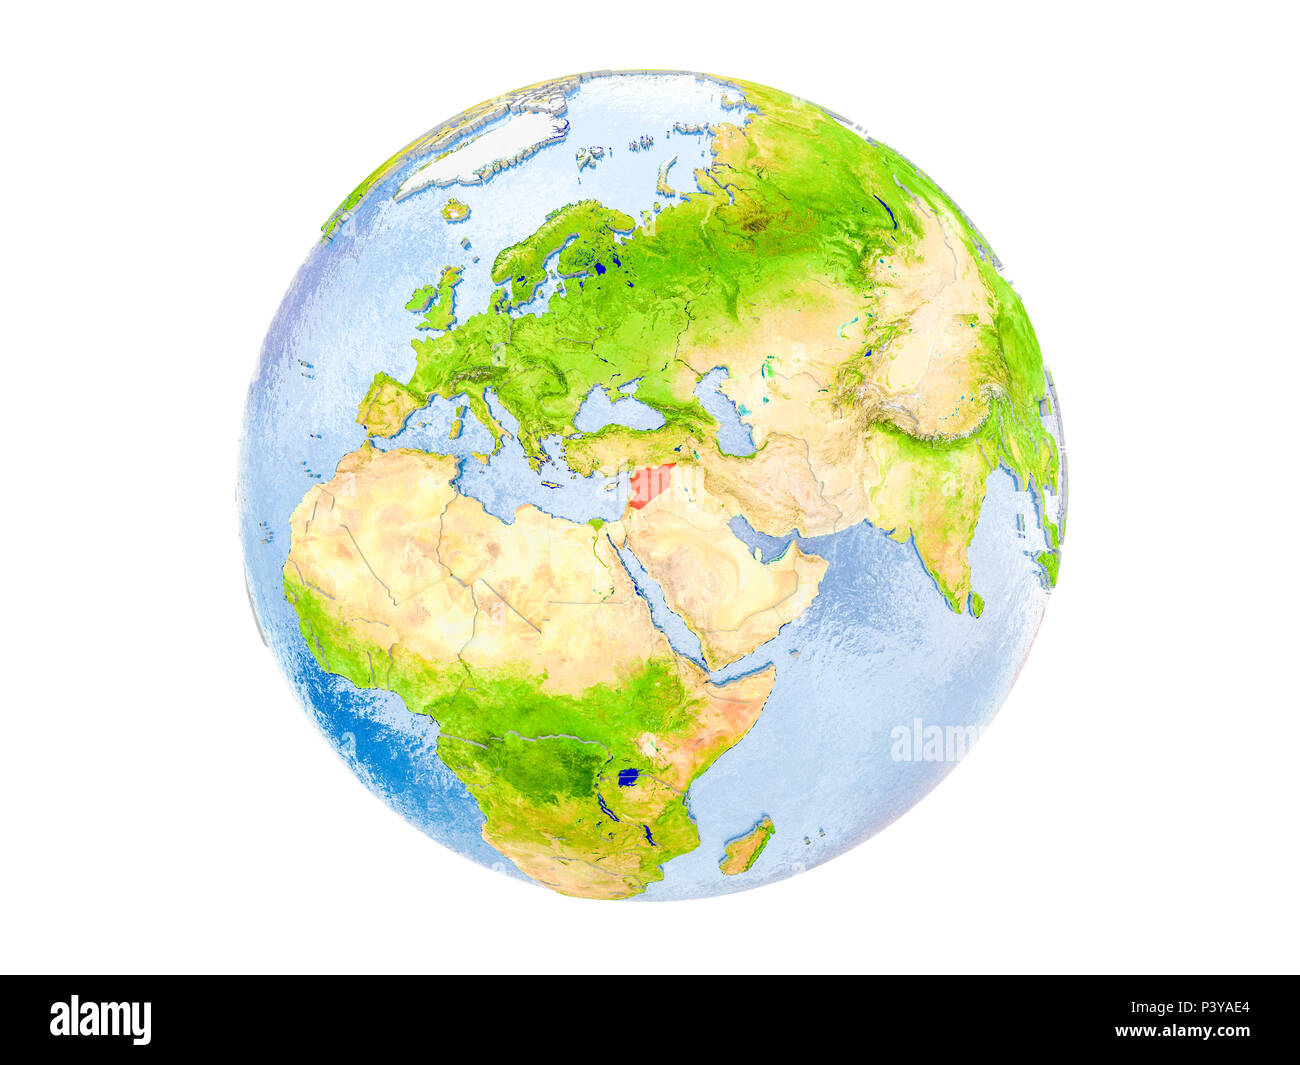 Syria highlighted in red on model of Earth. 3D illustration isolated on white background. Elements of this image furnished by NASA. - Stock Image